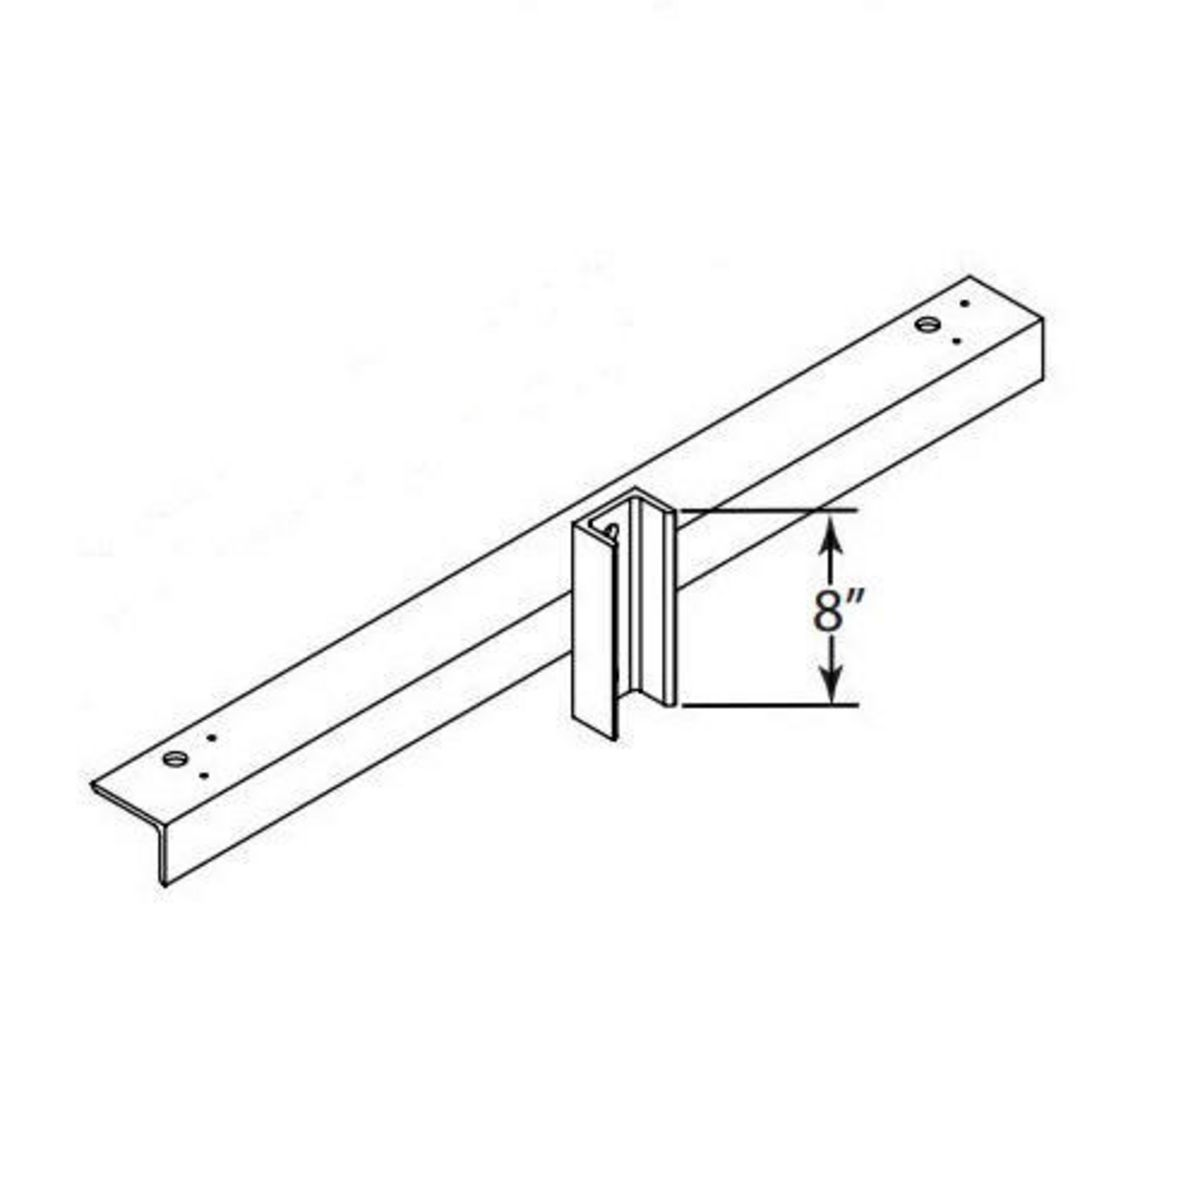 Hubbell Sportslighter Solutions,TCA-W2,BRKT X-ARM WOOD POLE MNTG 2 FIXT